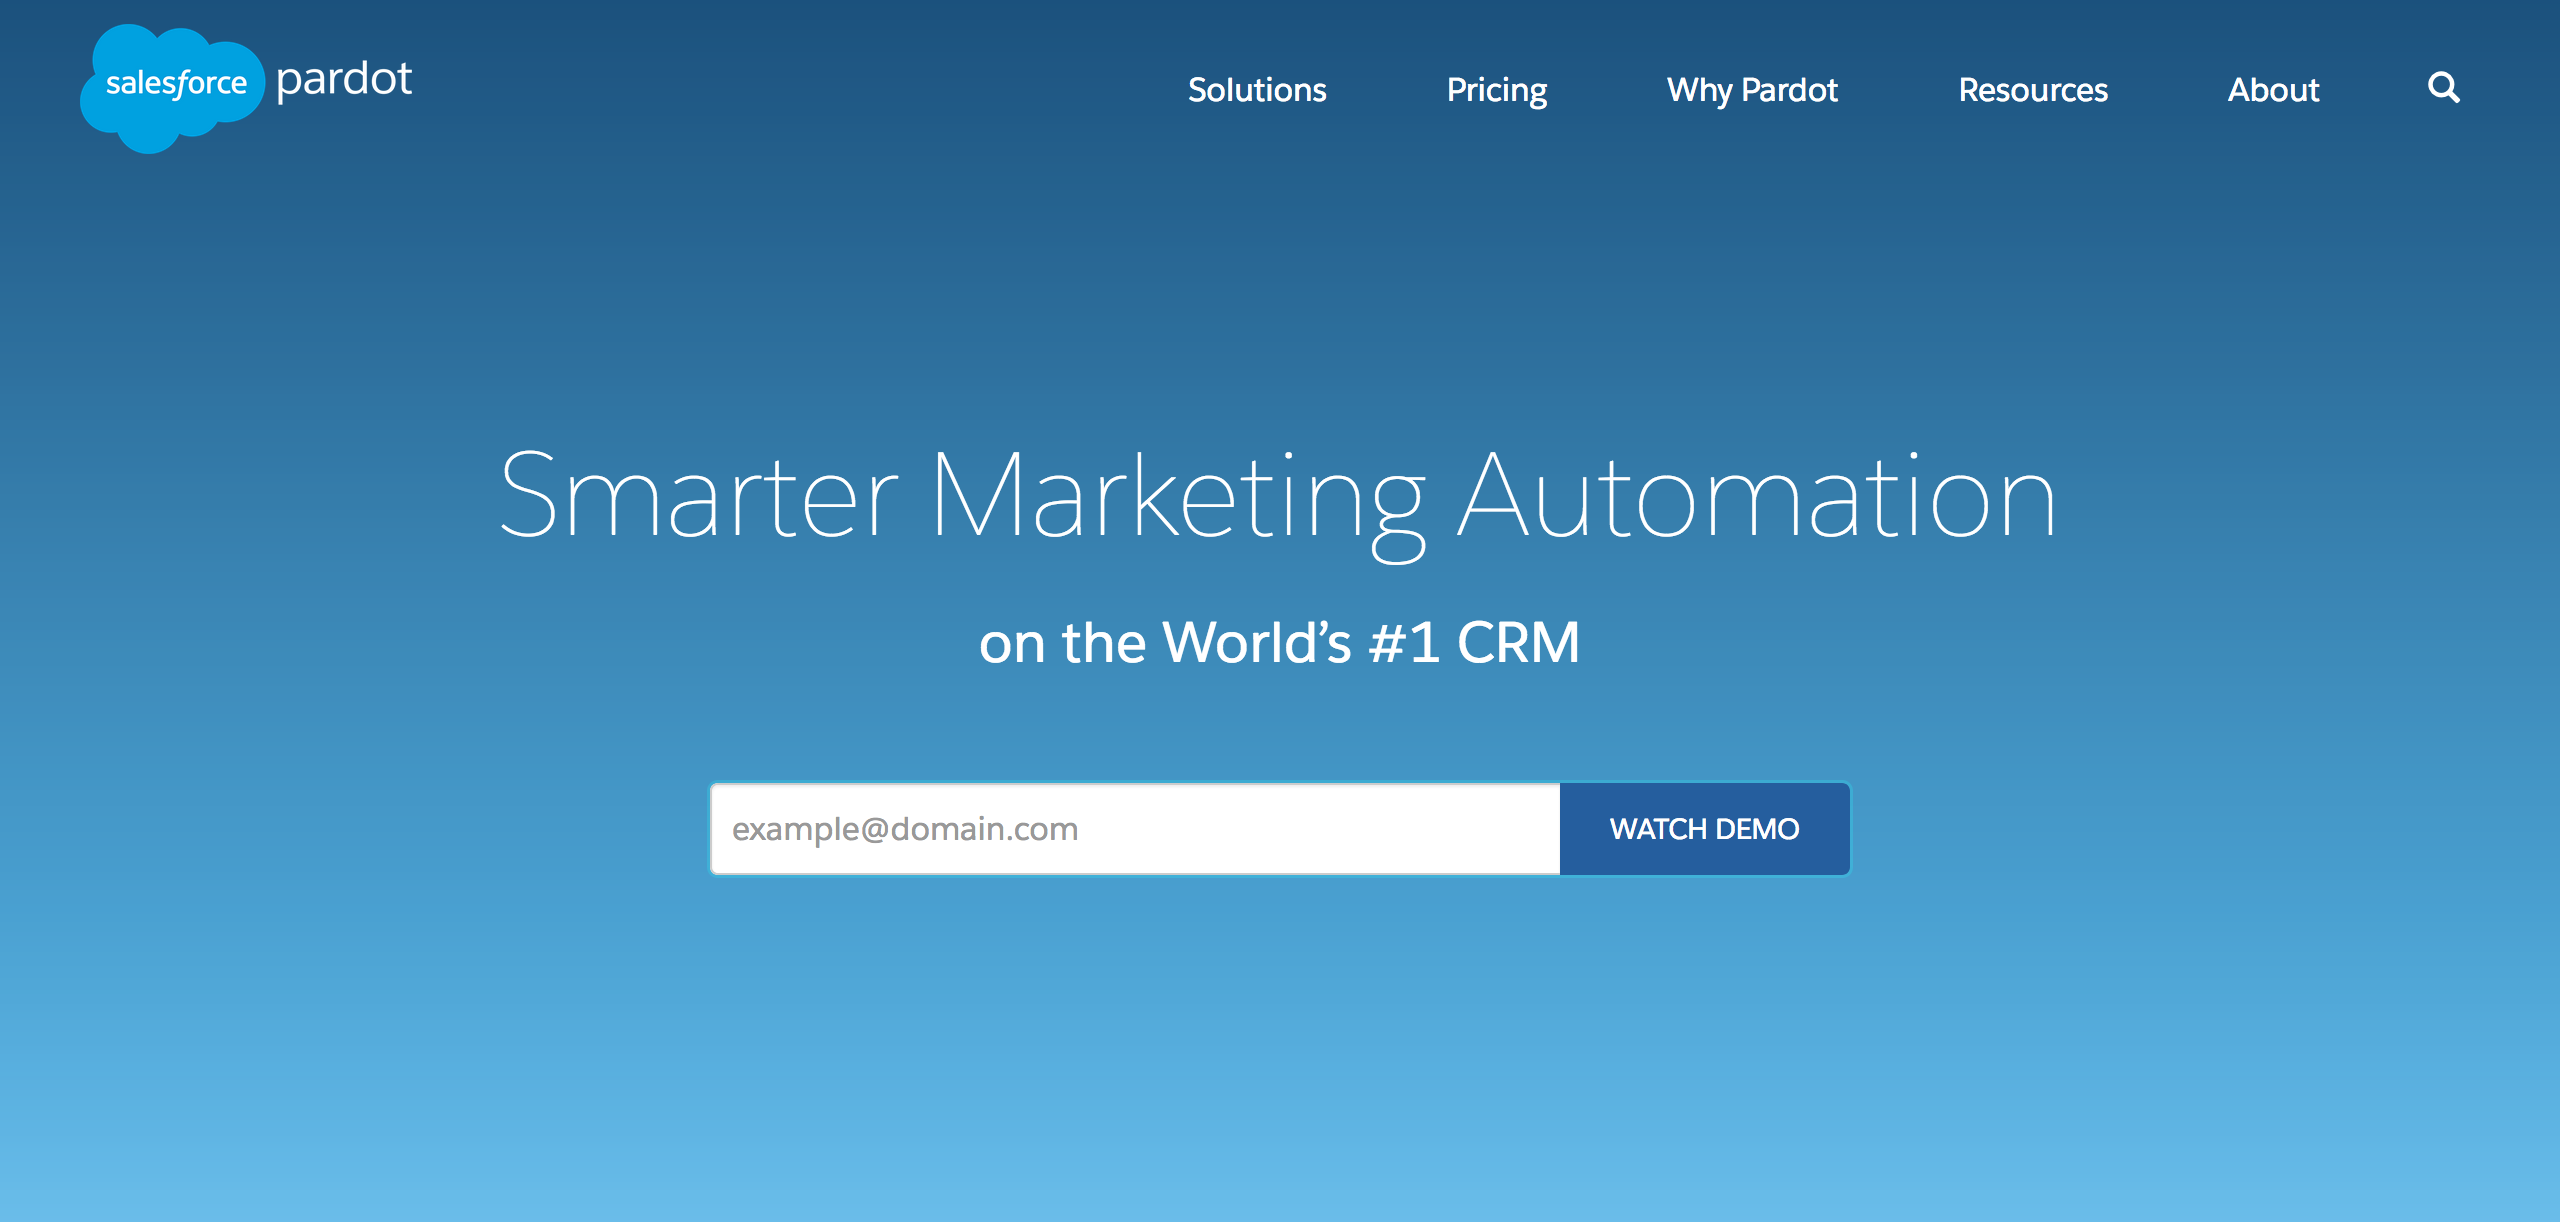 The 7 Best Marketing Automation Tools & Platforms of 2019